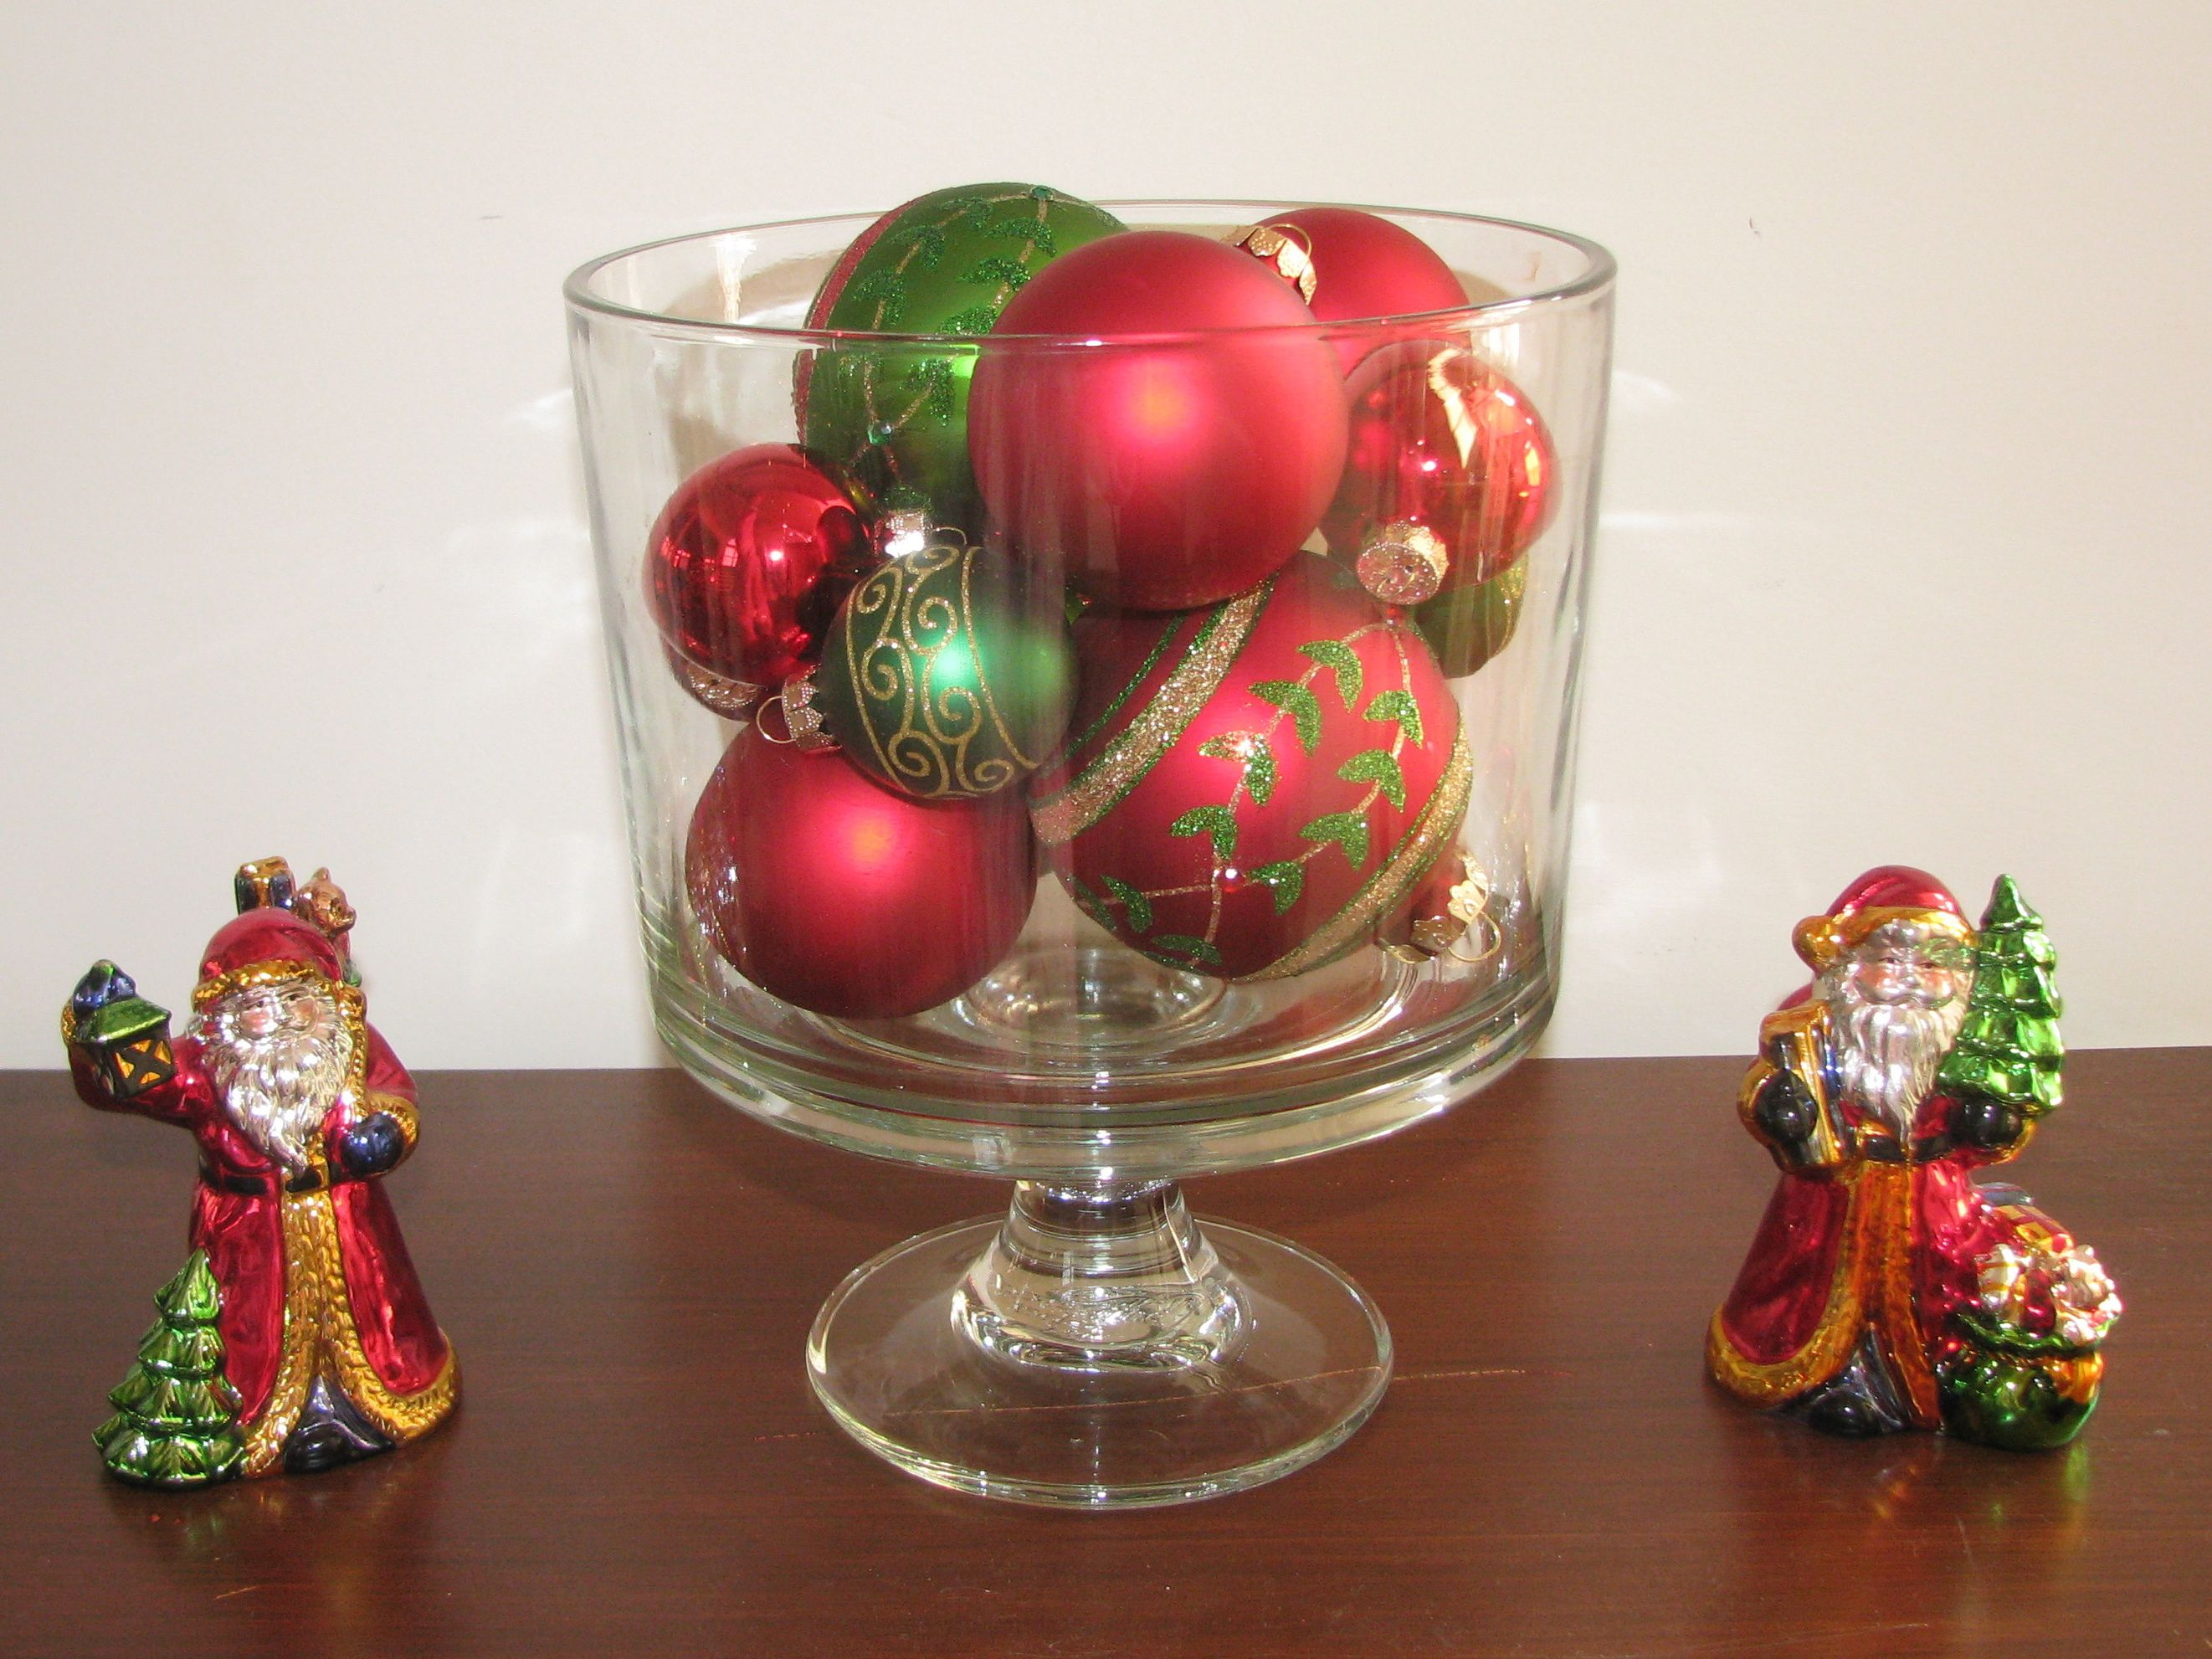 Idea for pampered chef trifle bowl elegant christmas decorations